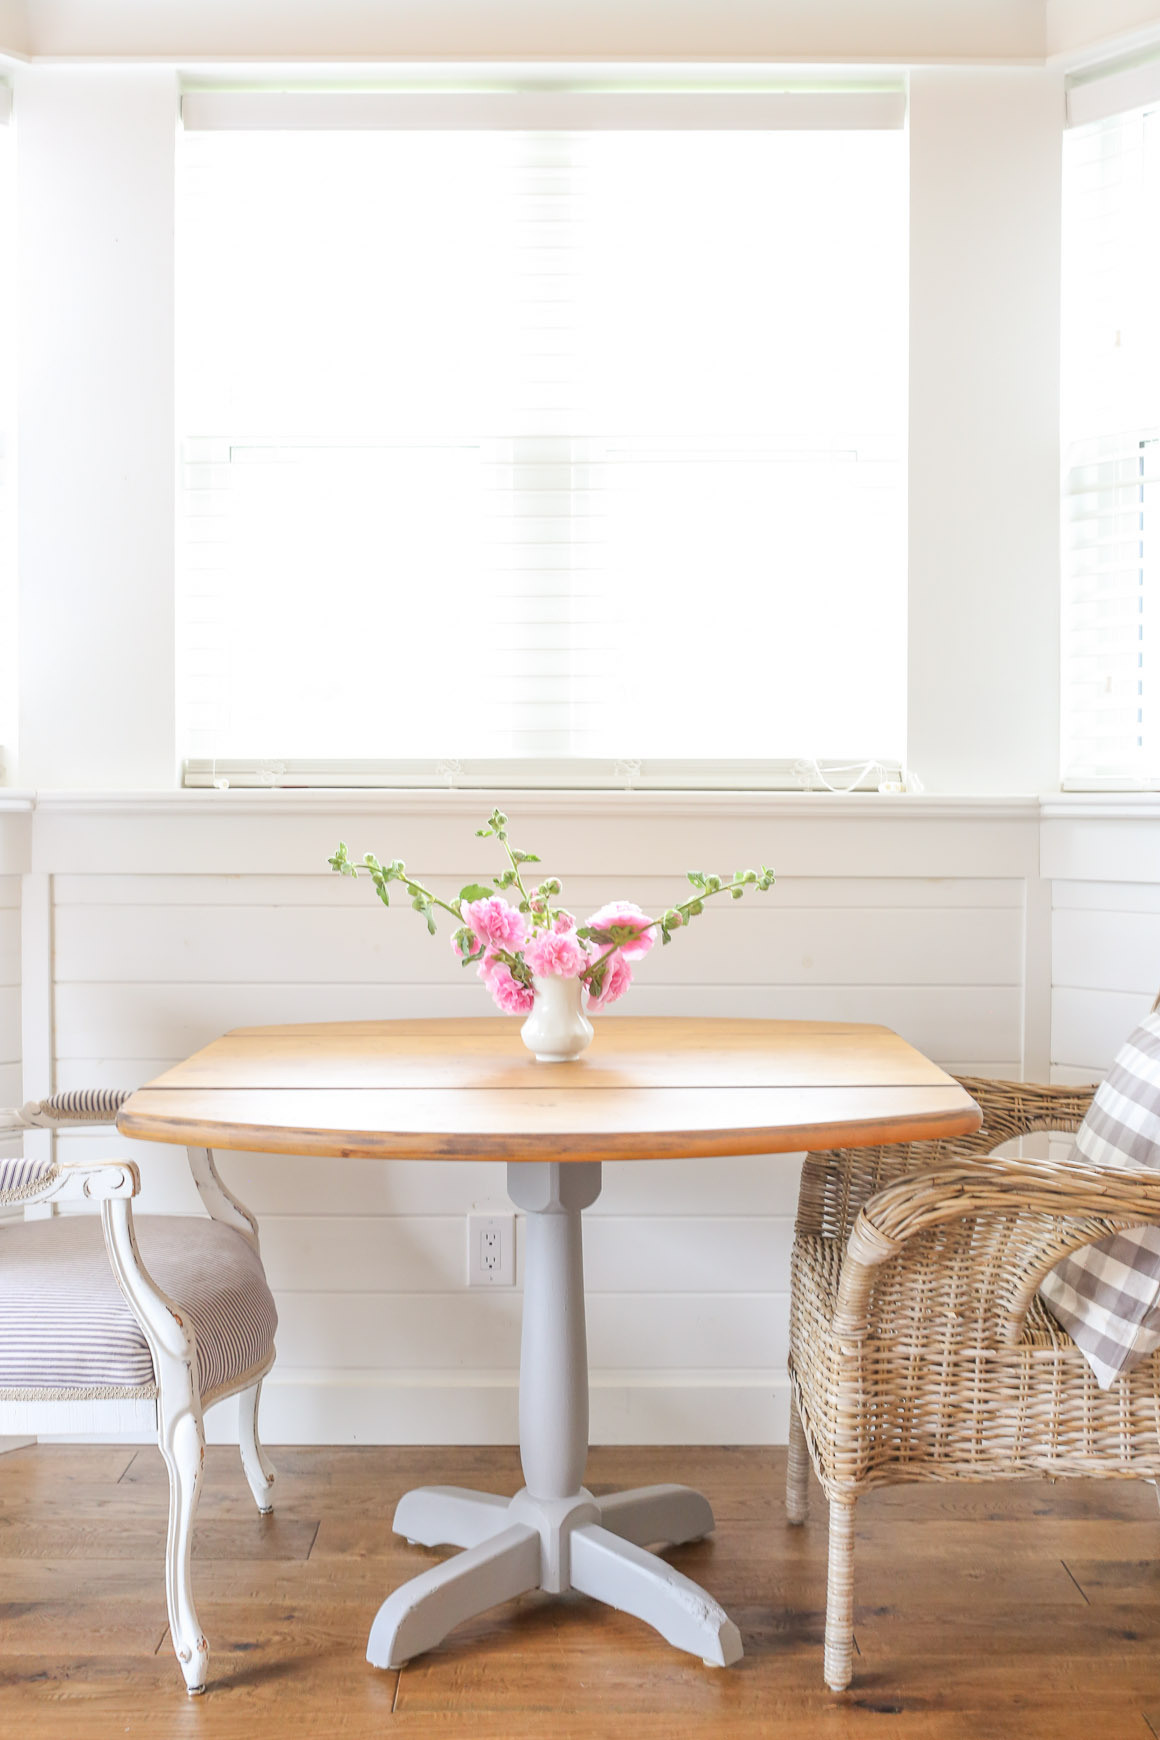 ... Rustic Farmhouse Style Pedestal Table |This Mamas Dance 1